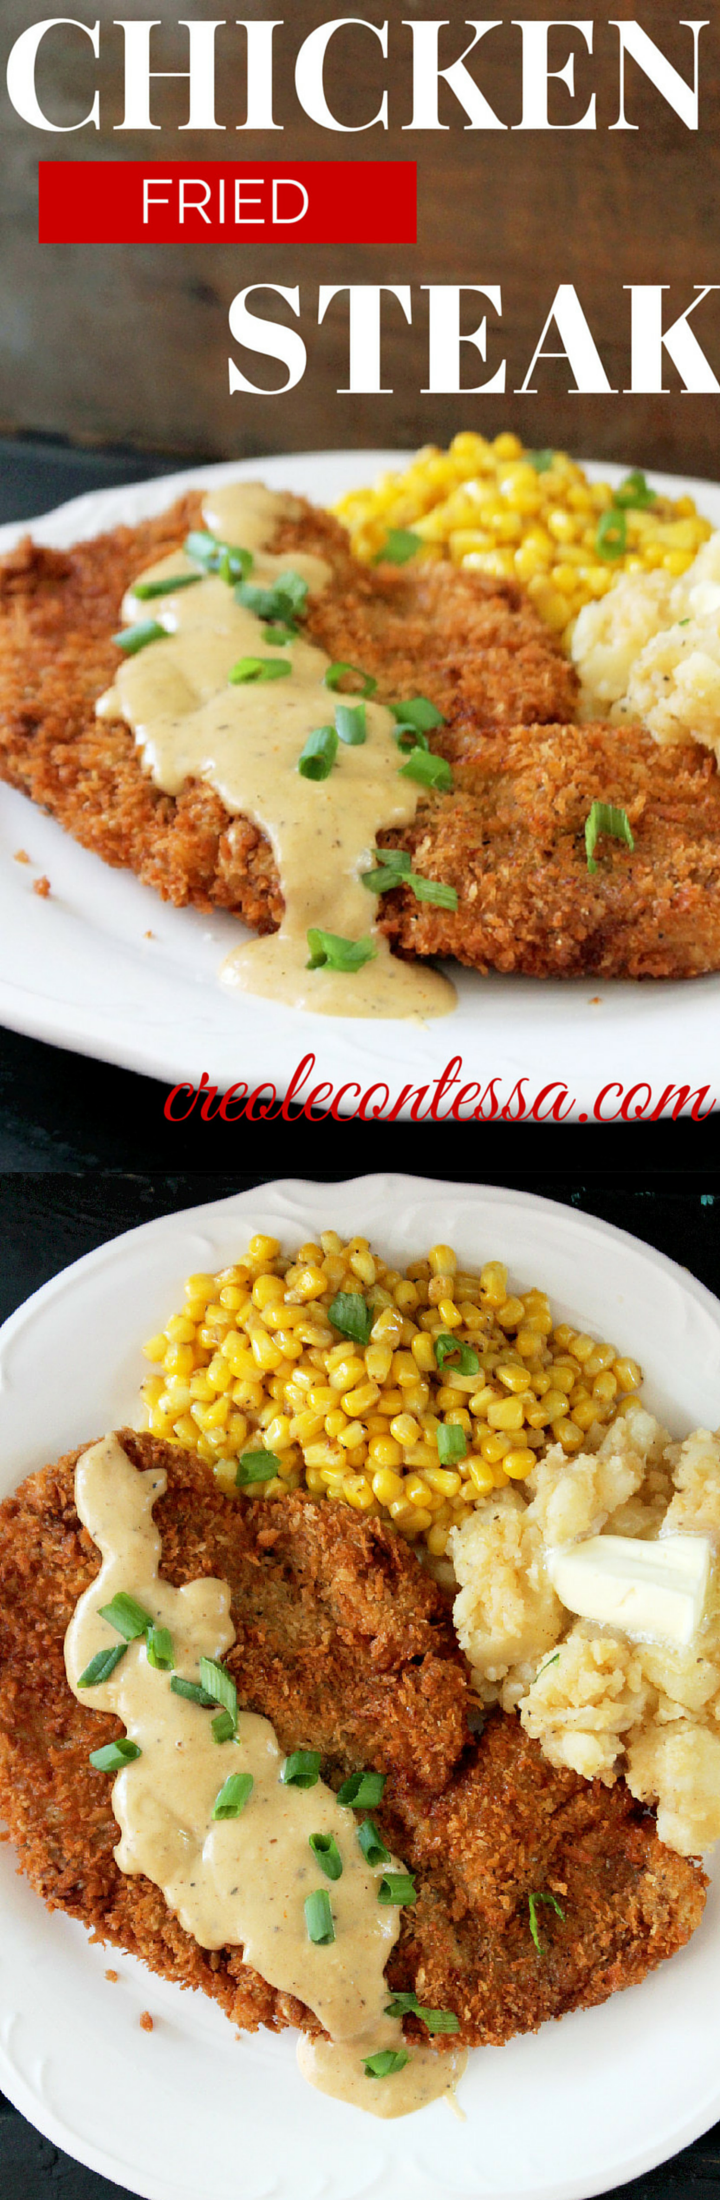 Chicken Fried Steak - Creole Contessa